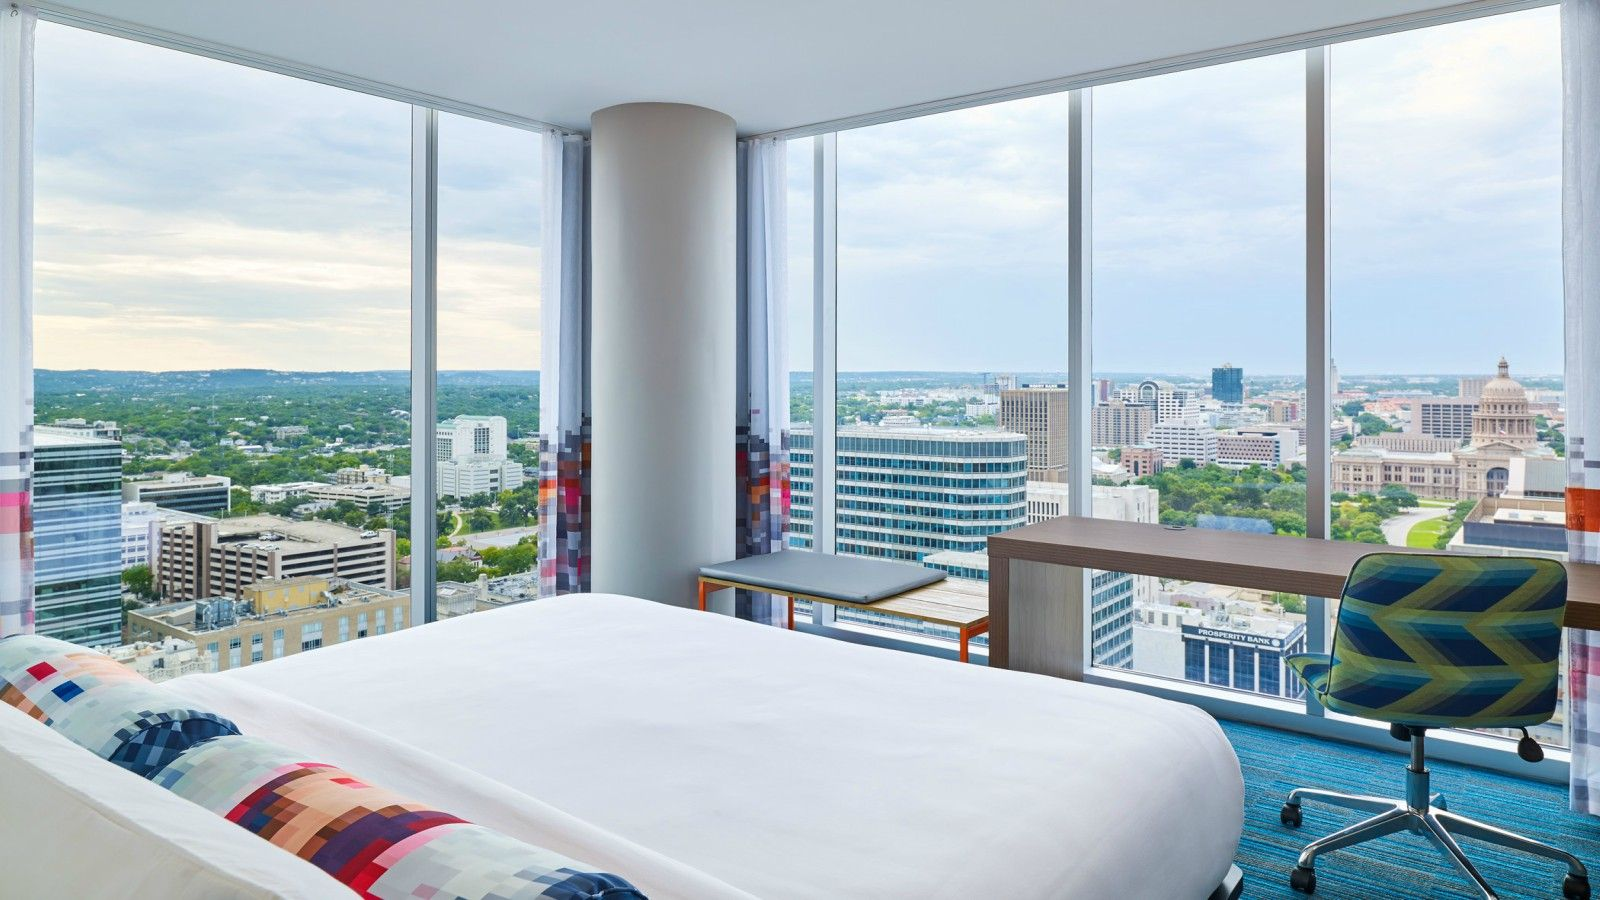 Downtown Austin Accommodations - Breezy Room